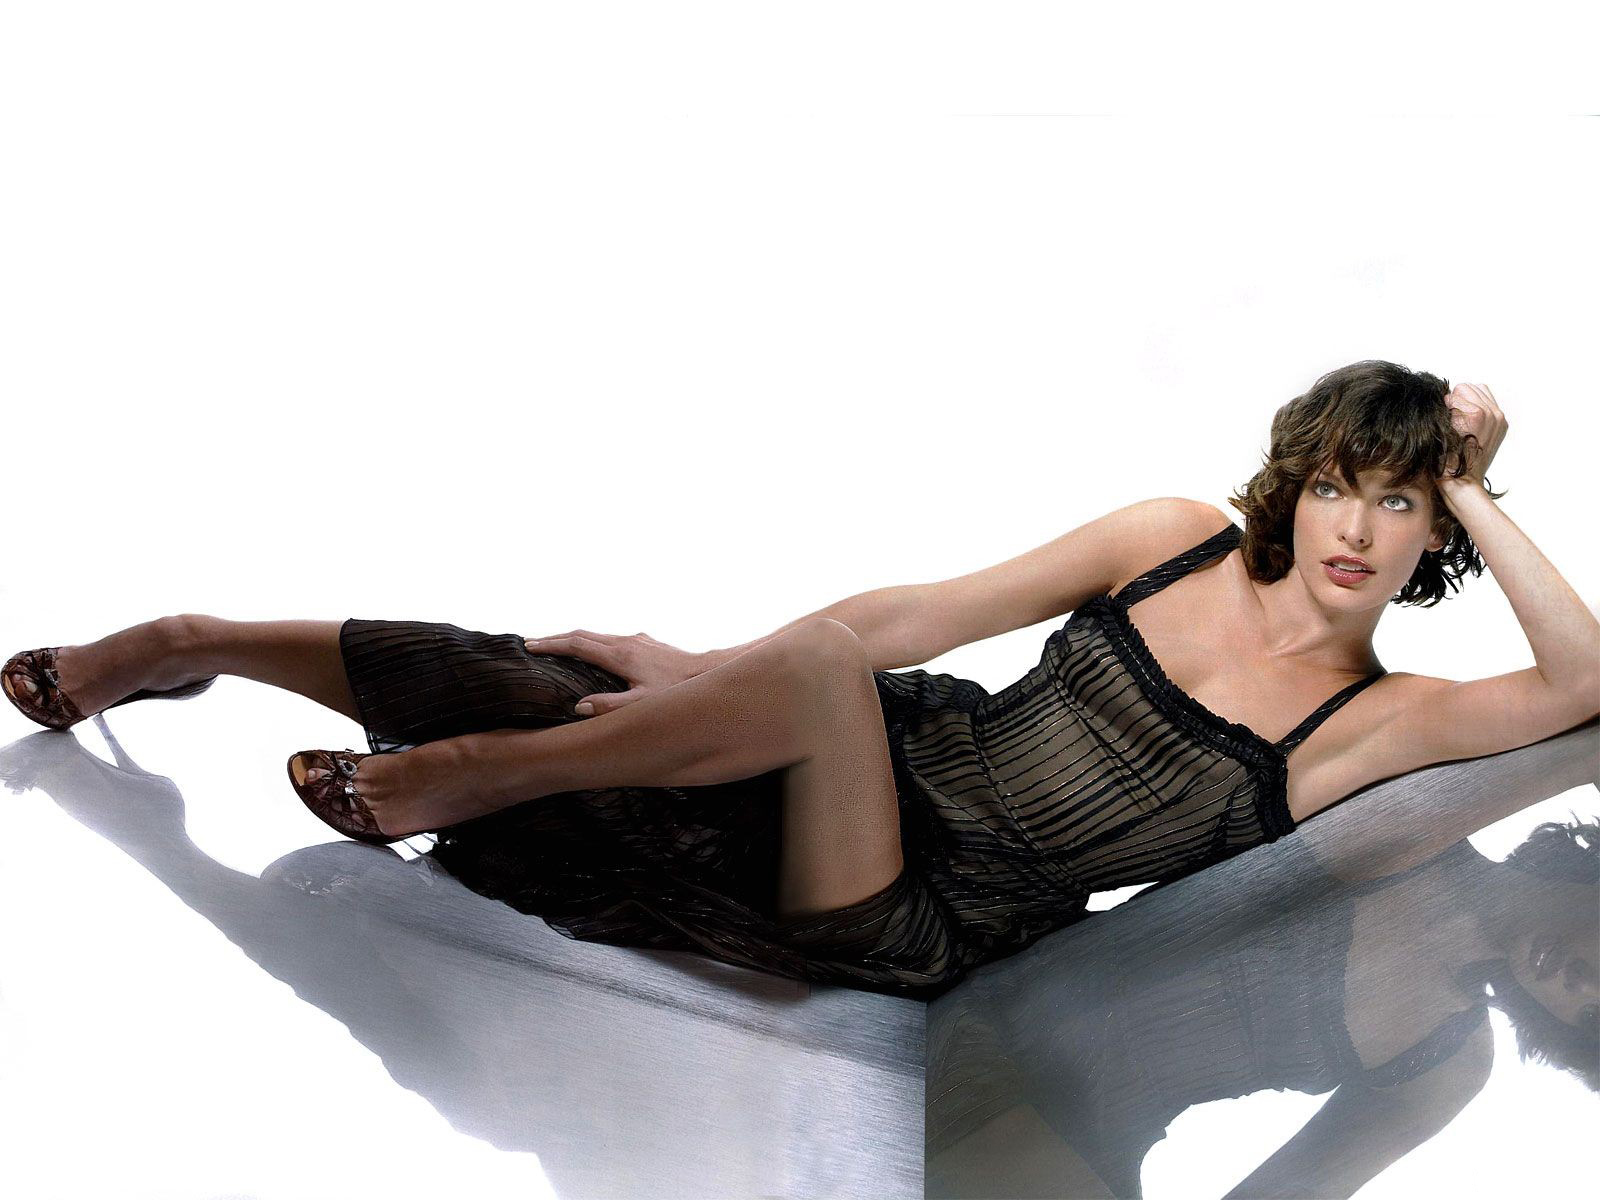 Amateurs Candid Milla Jovovich Hairy Legs